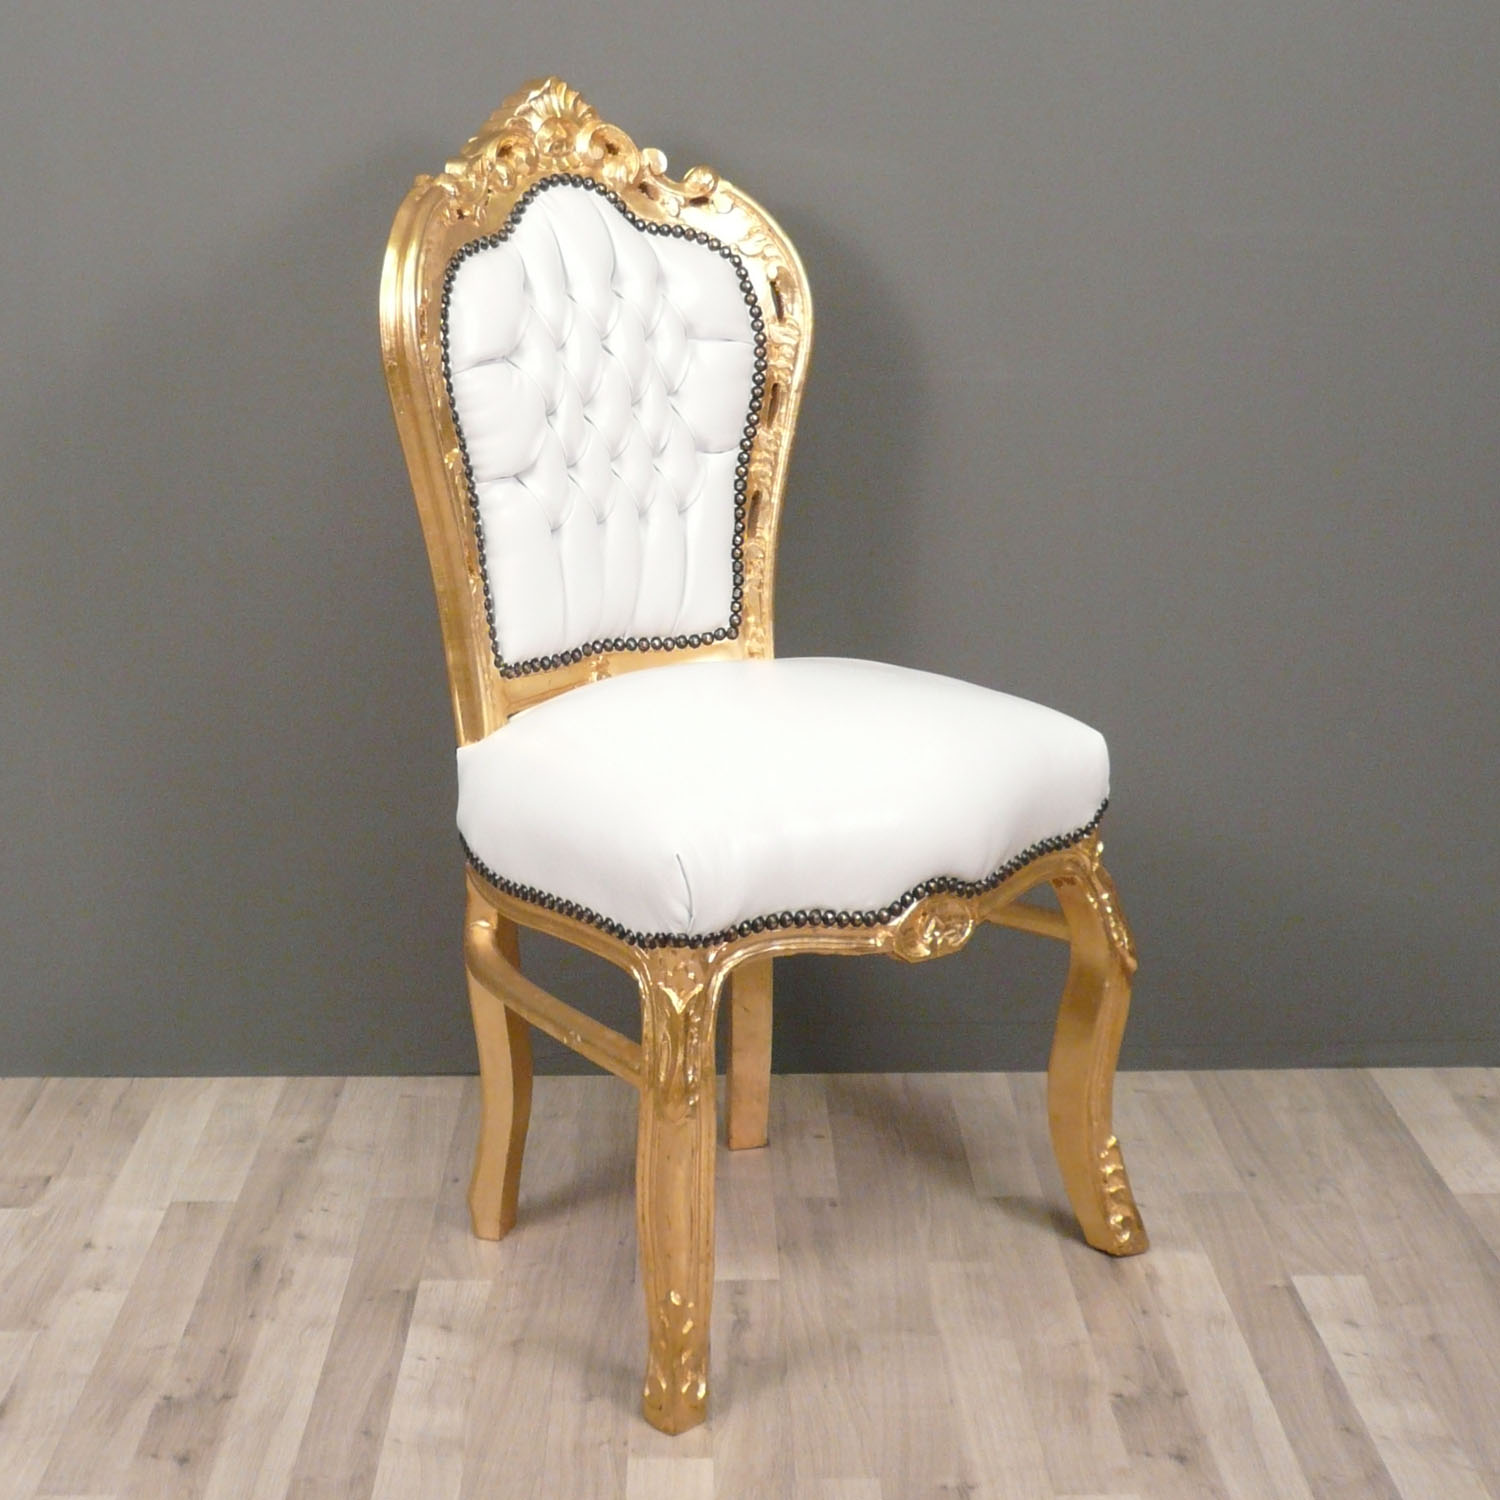 Chaise baroque banche et or canap baroque - Chaise baroque blanche ...